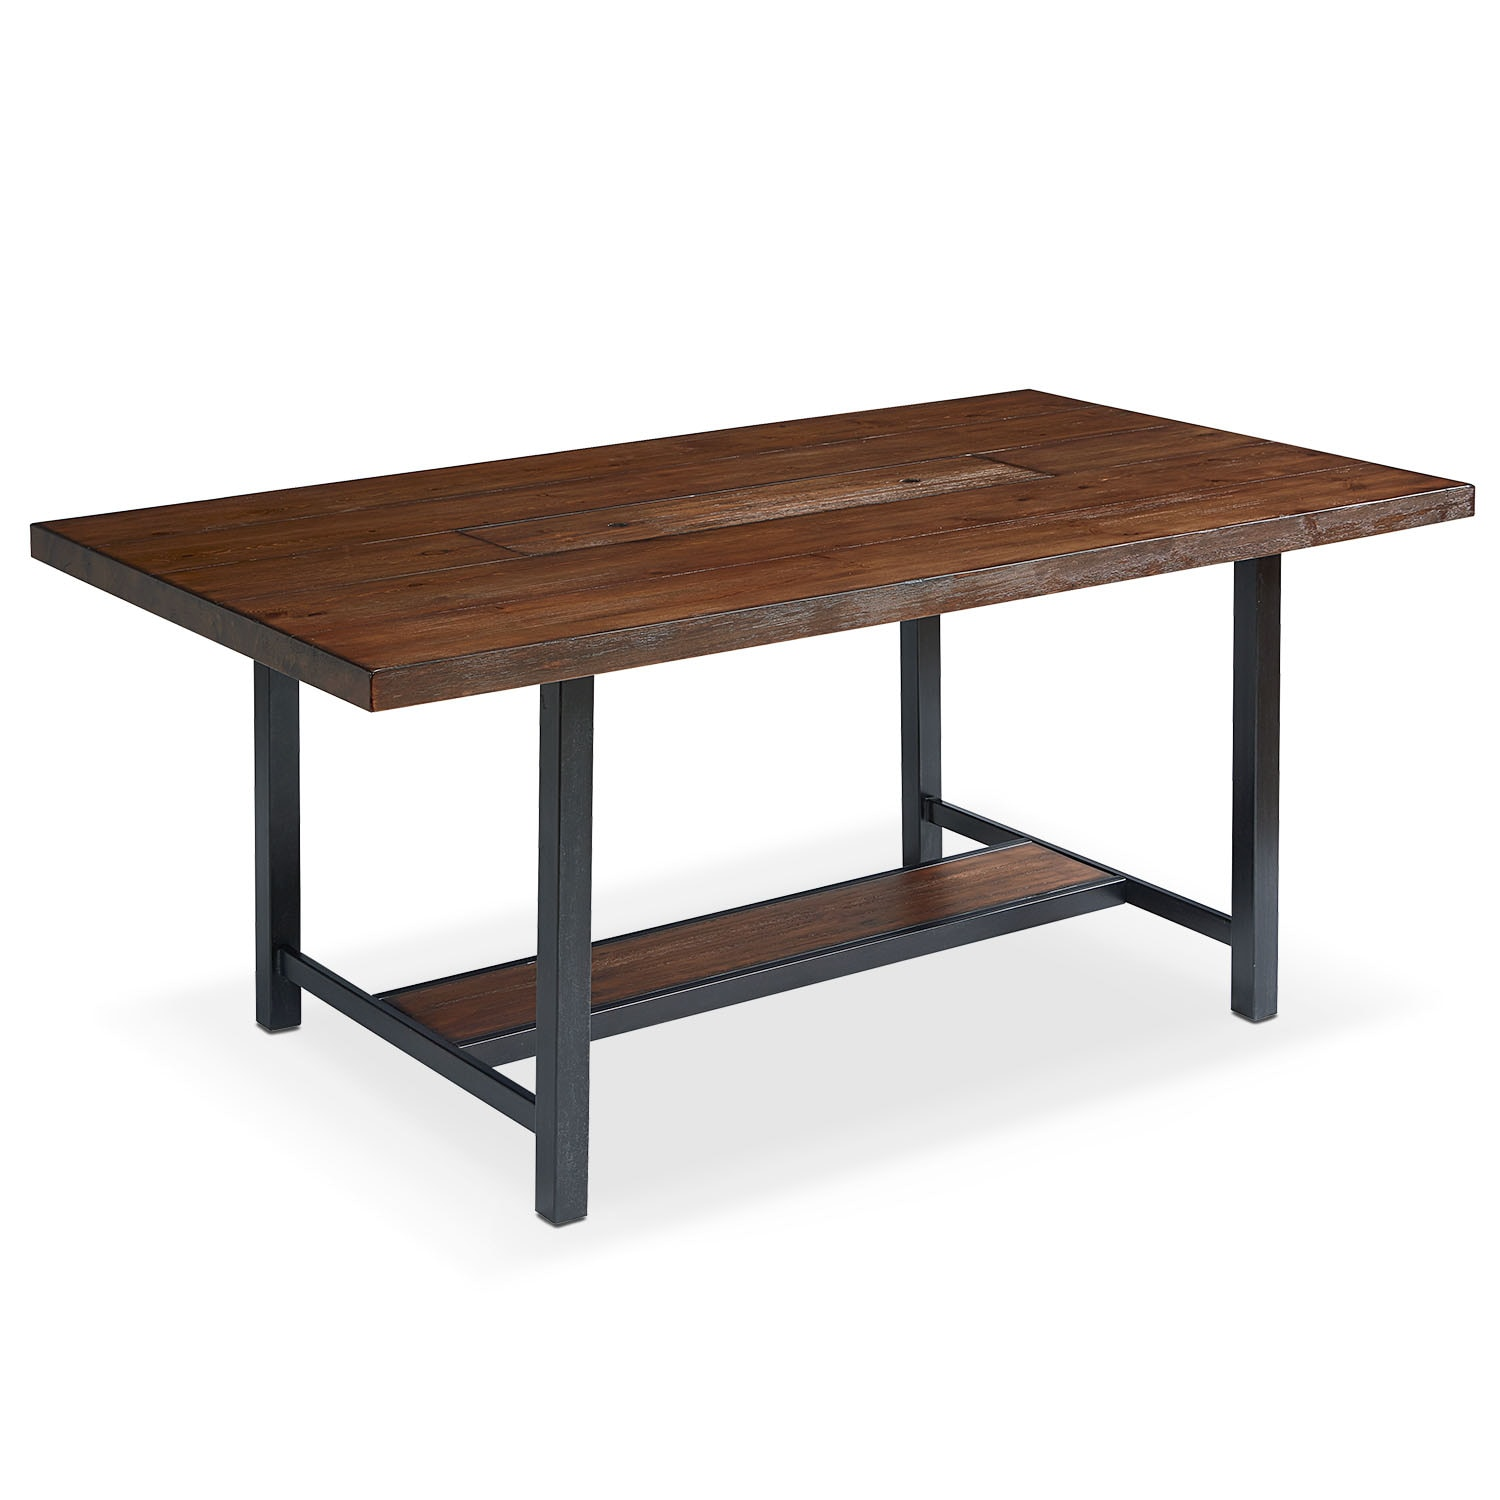 "Industrial Framework 84"" Dining Table - Milk Crate"